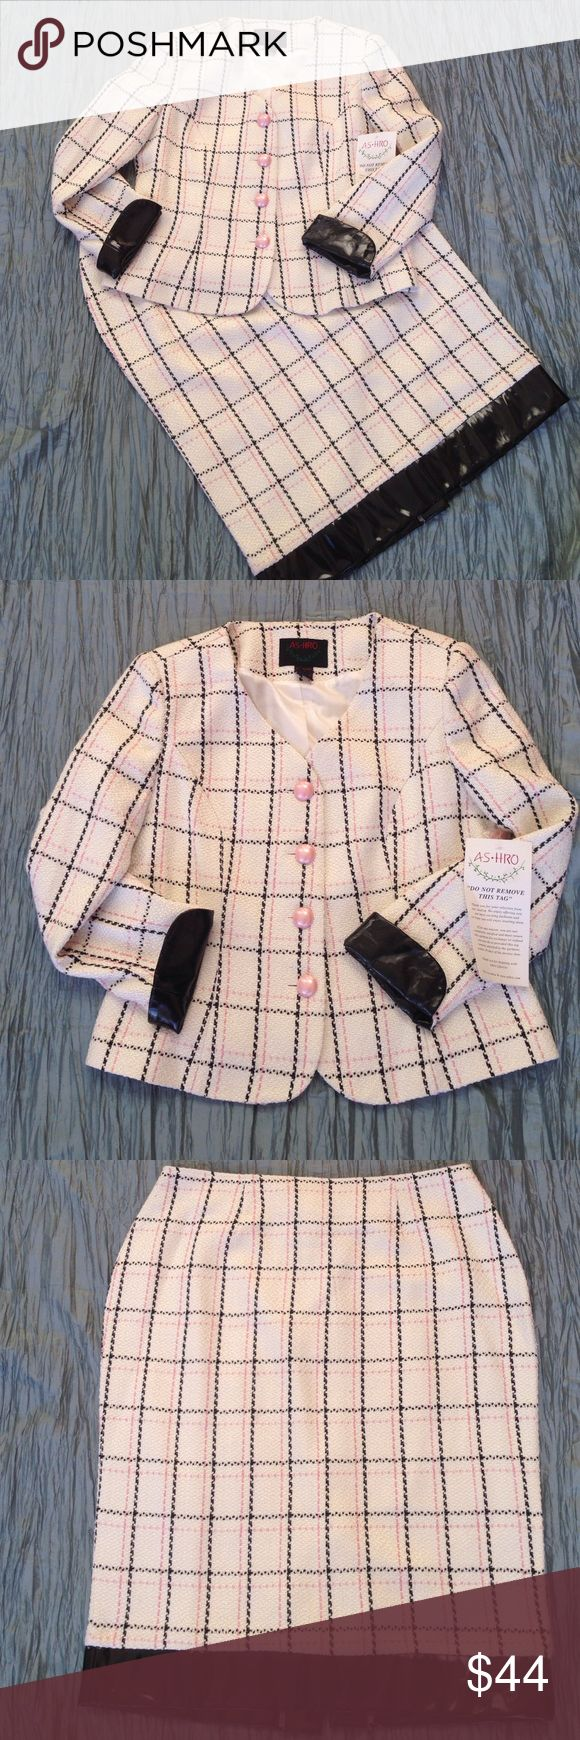 💕 Valentines Sale!! Ashro 2 pc. suit. New. Ashro skirt suit. White with pretty pink and black plaid. Patten leather accents on cuffs and skirt hem. Jacket still has original tag. Pearly pink rounded buttons. Ashro Skirts Skirt Sets